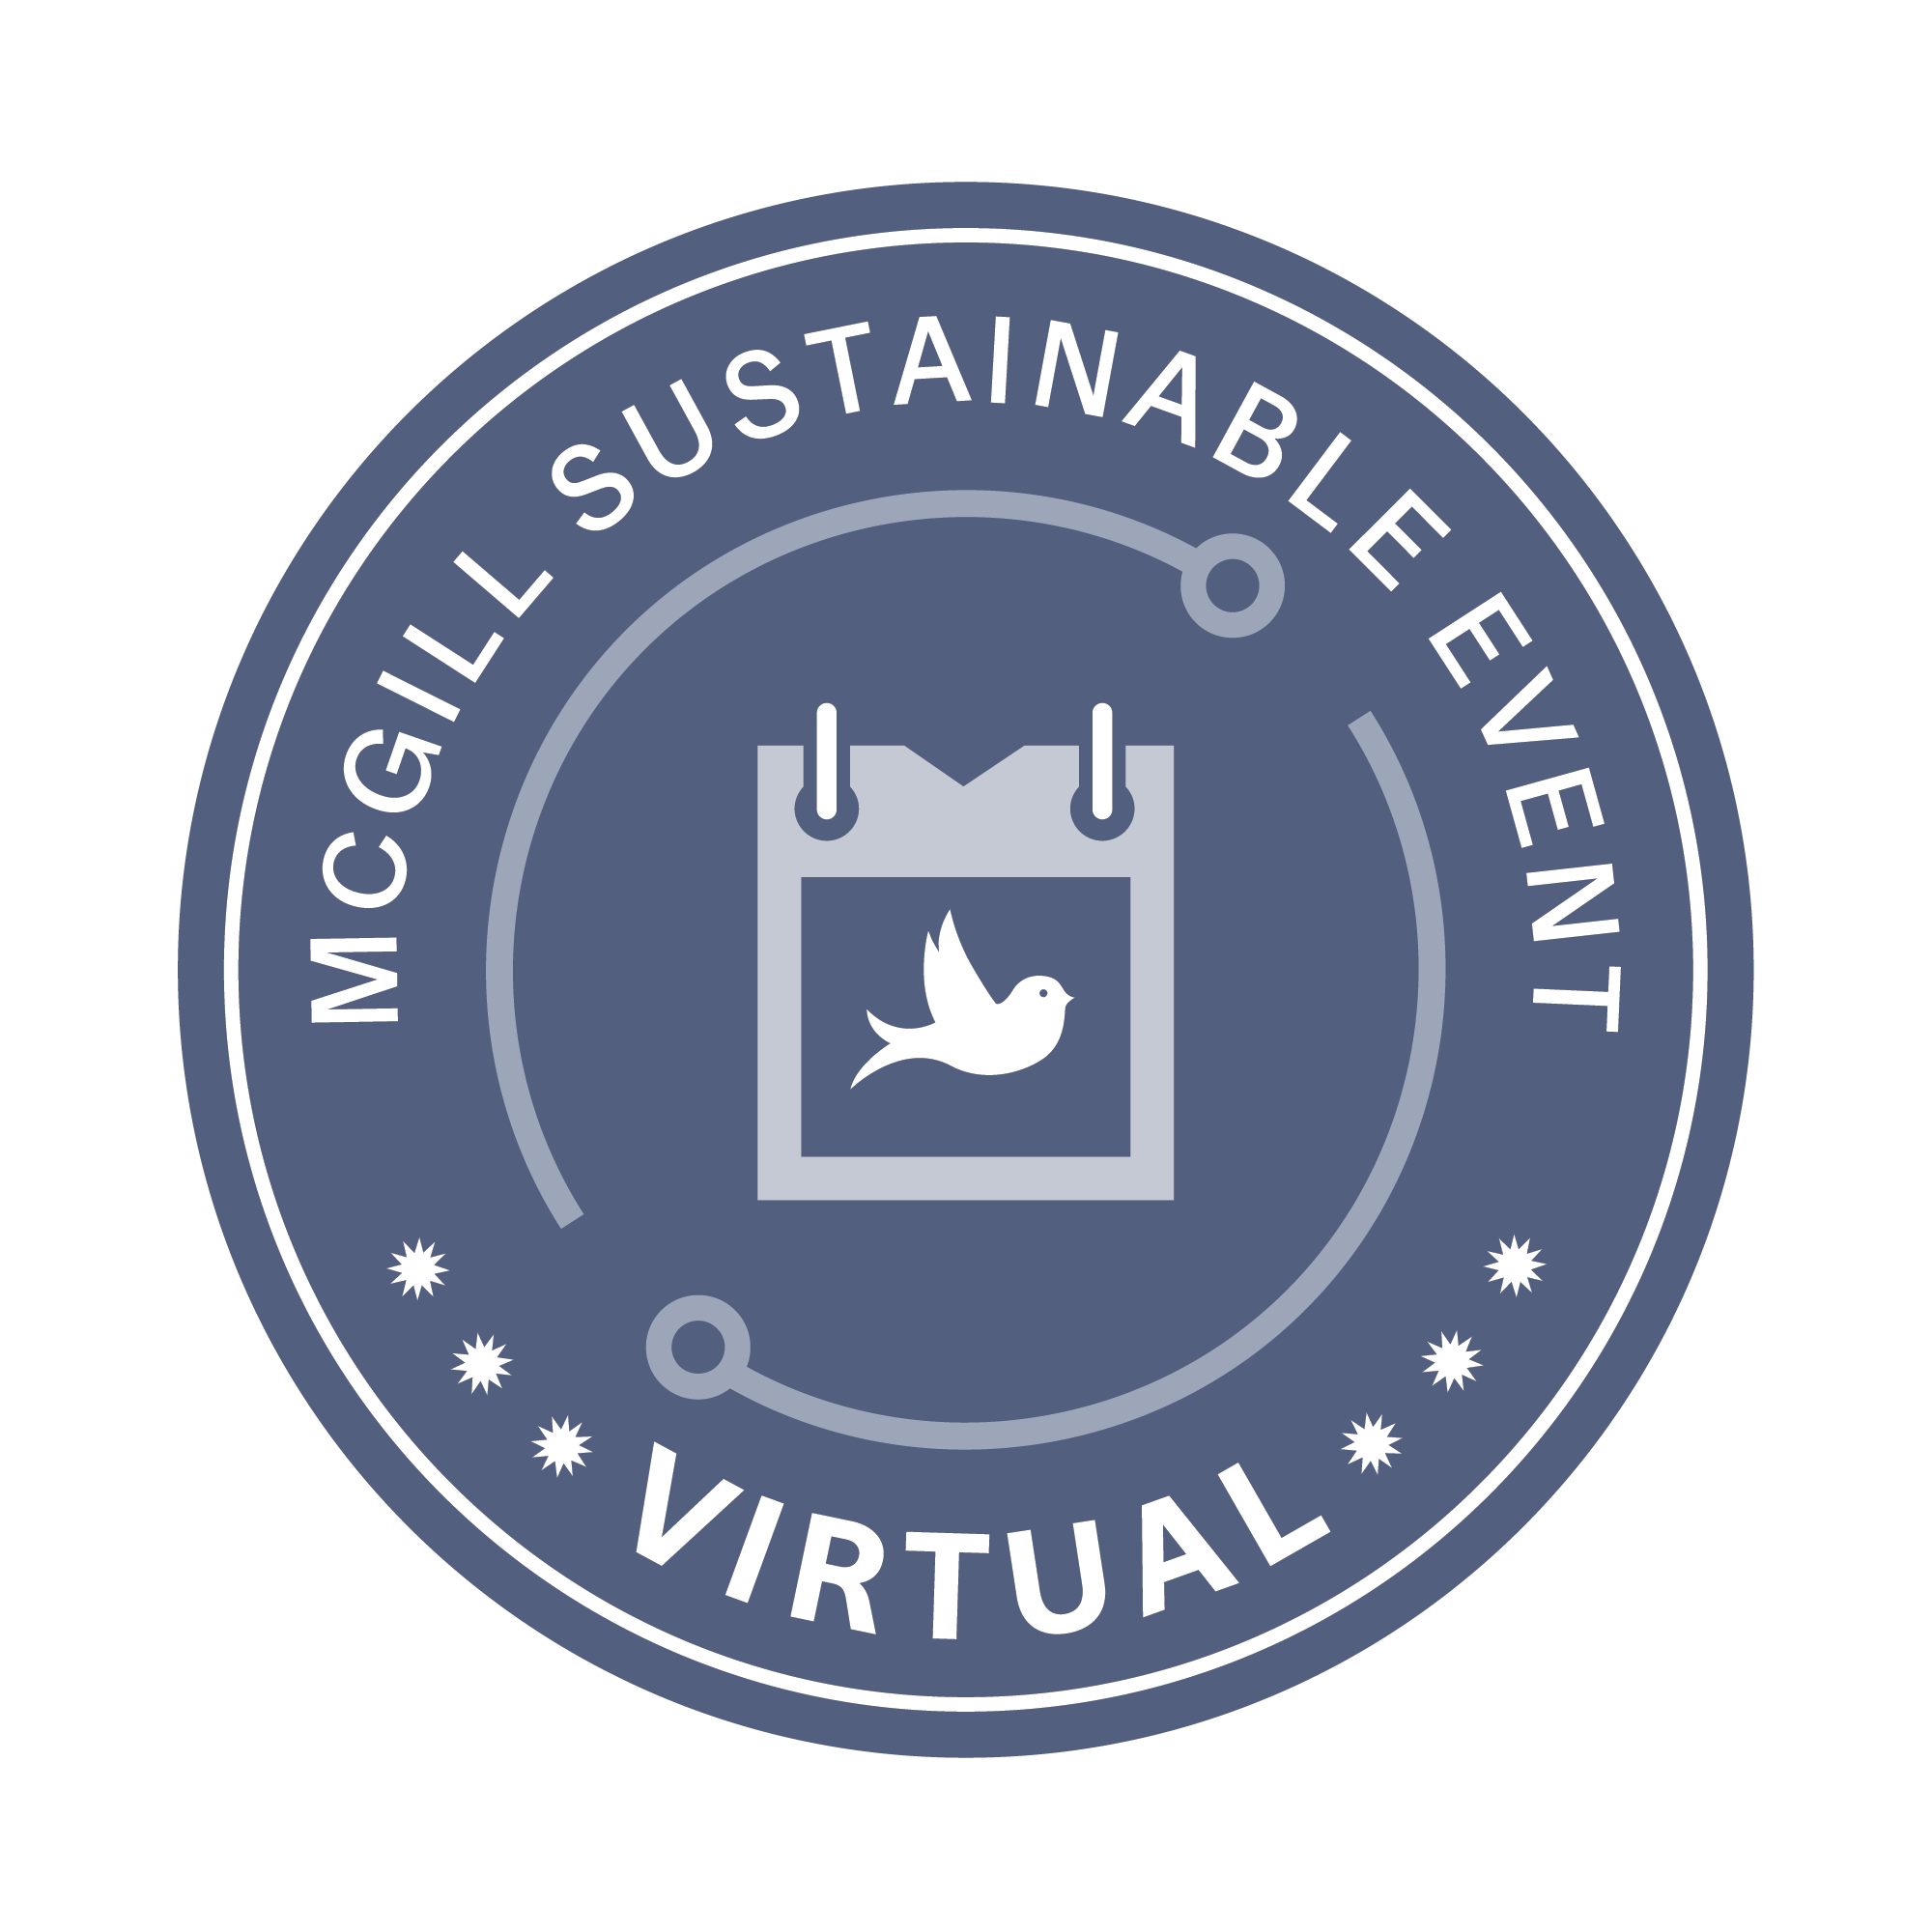 McGill sustainable virtual event logo